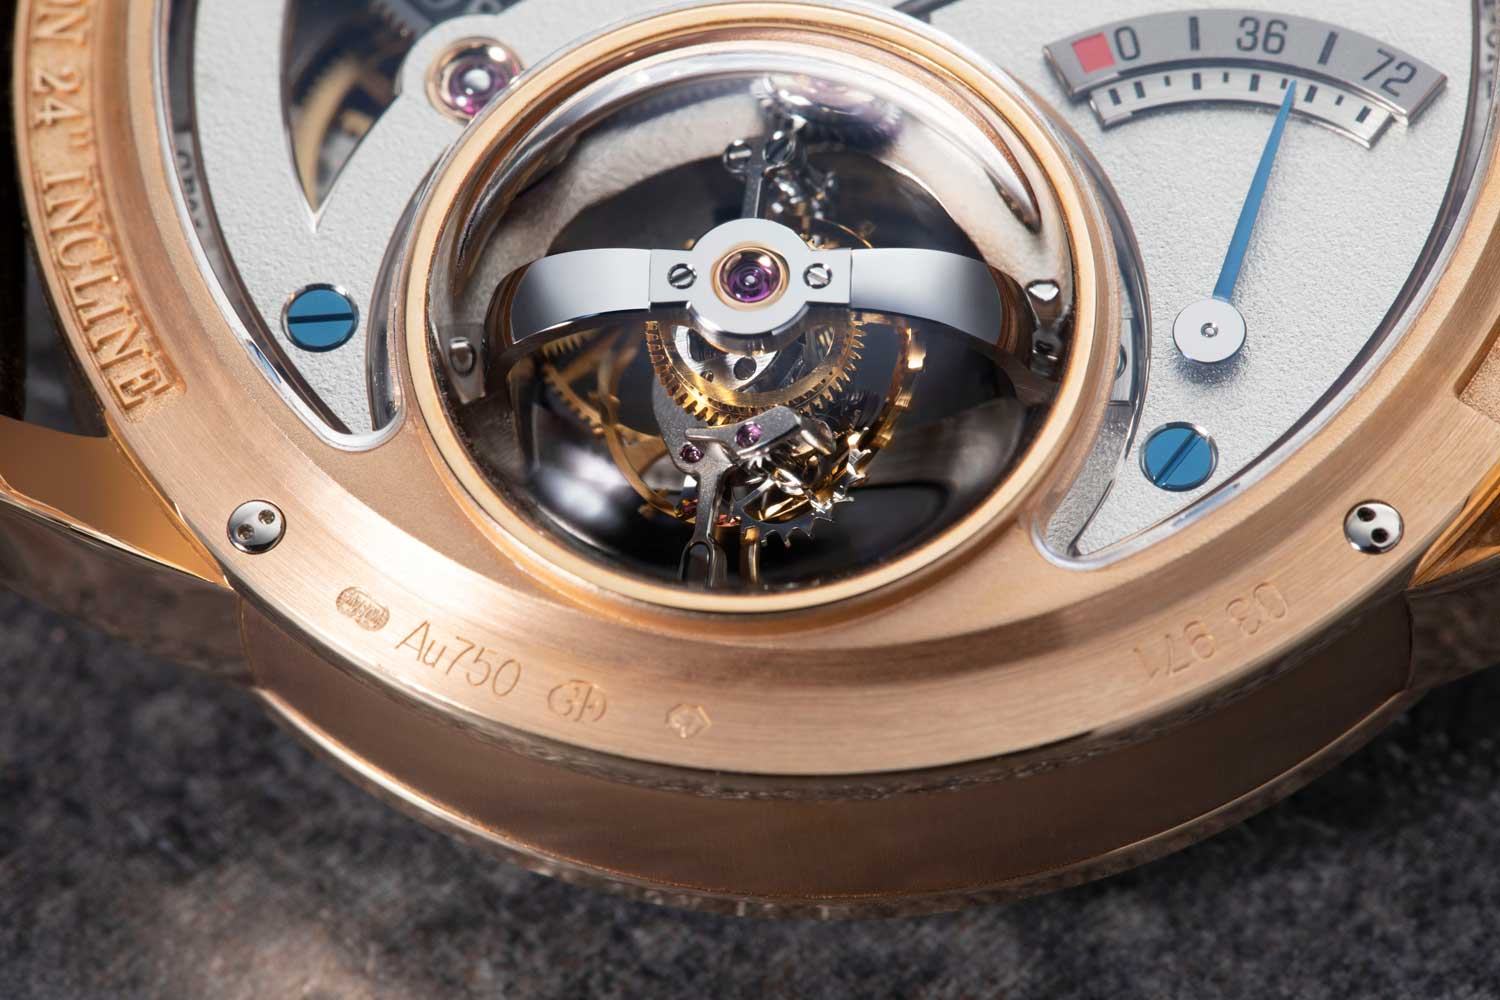 Greubel Forsey Tourbillon 24 Secondes Vision (Image © Revolution)